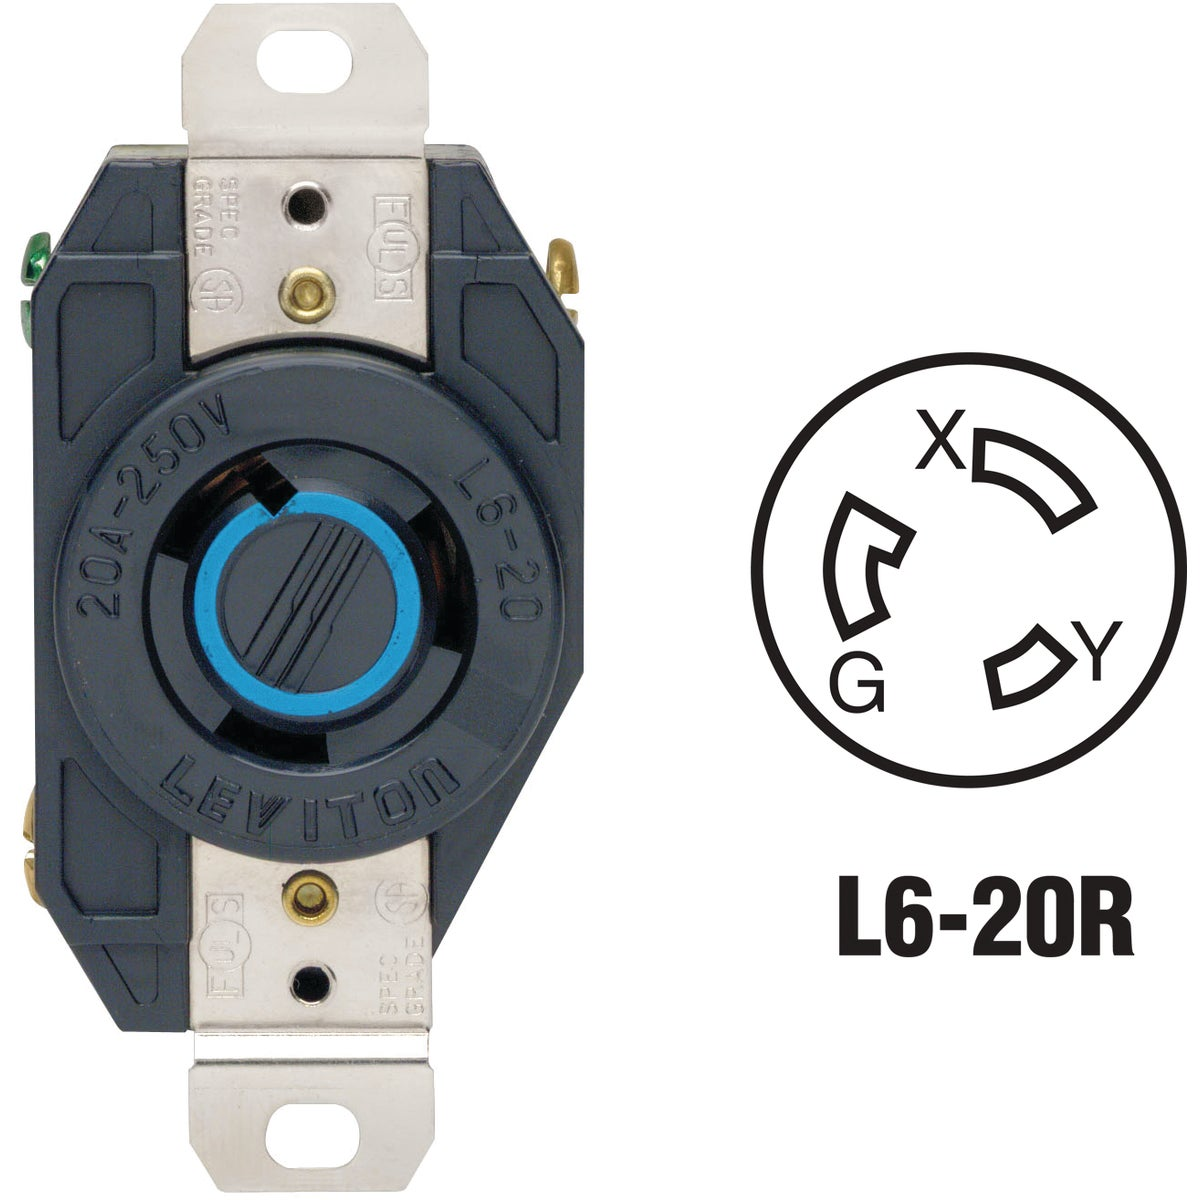 LOCKING OUTLET - R022320 by Leviton Mfg Co